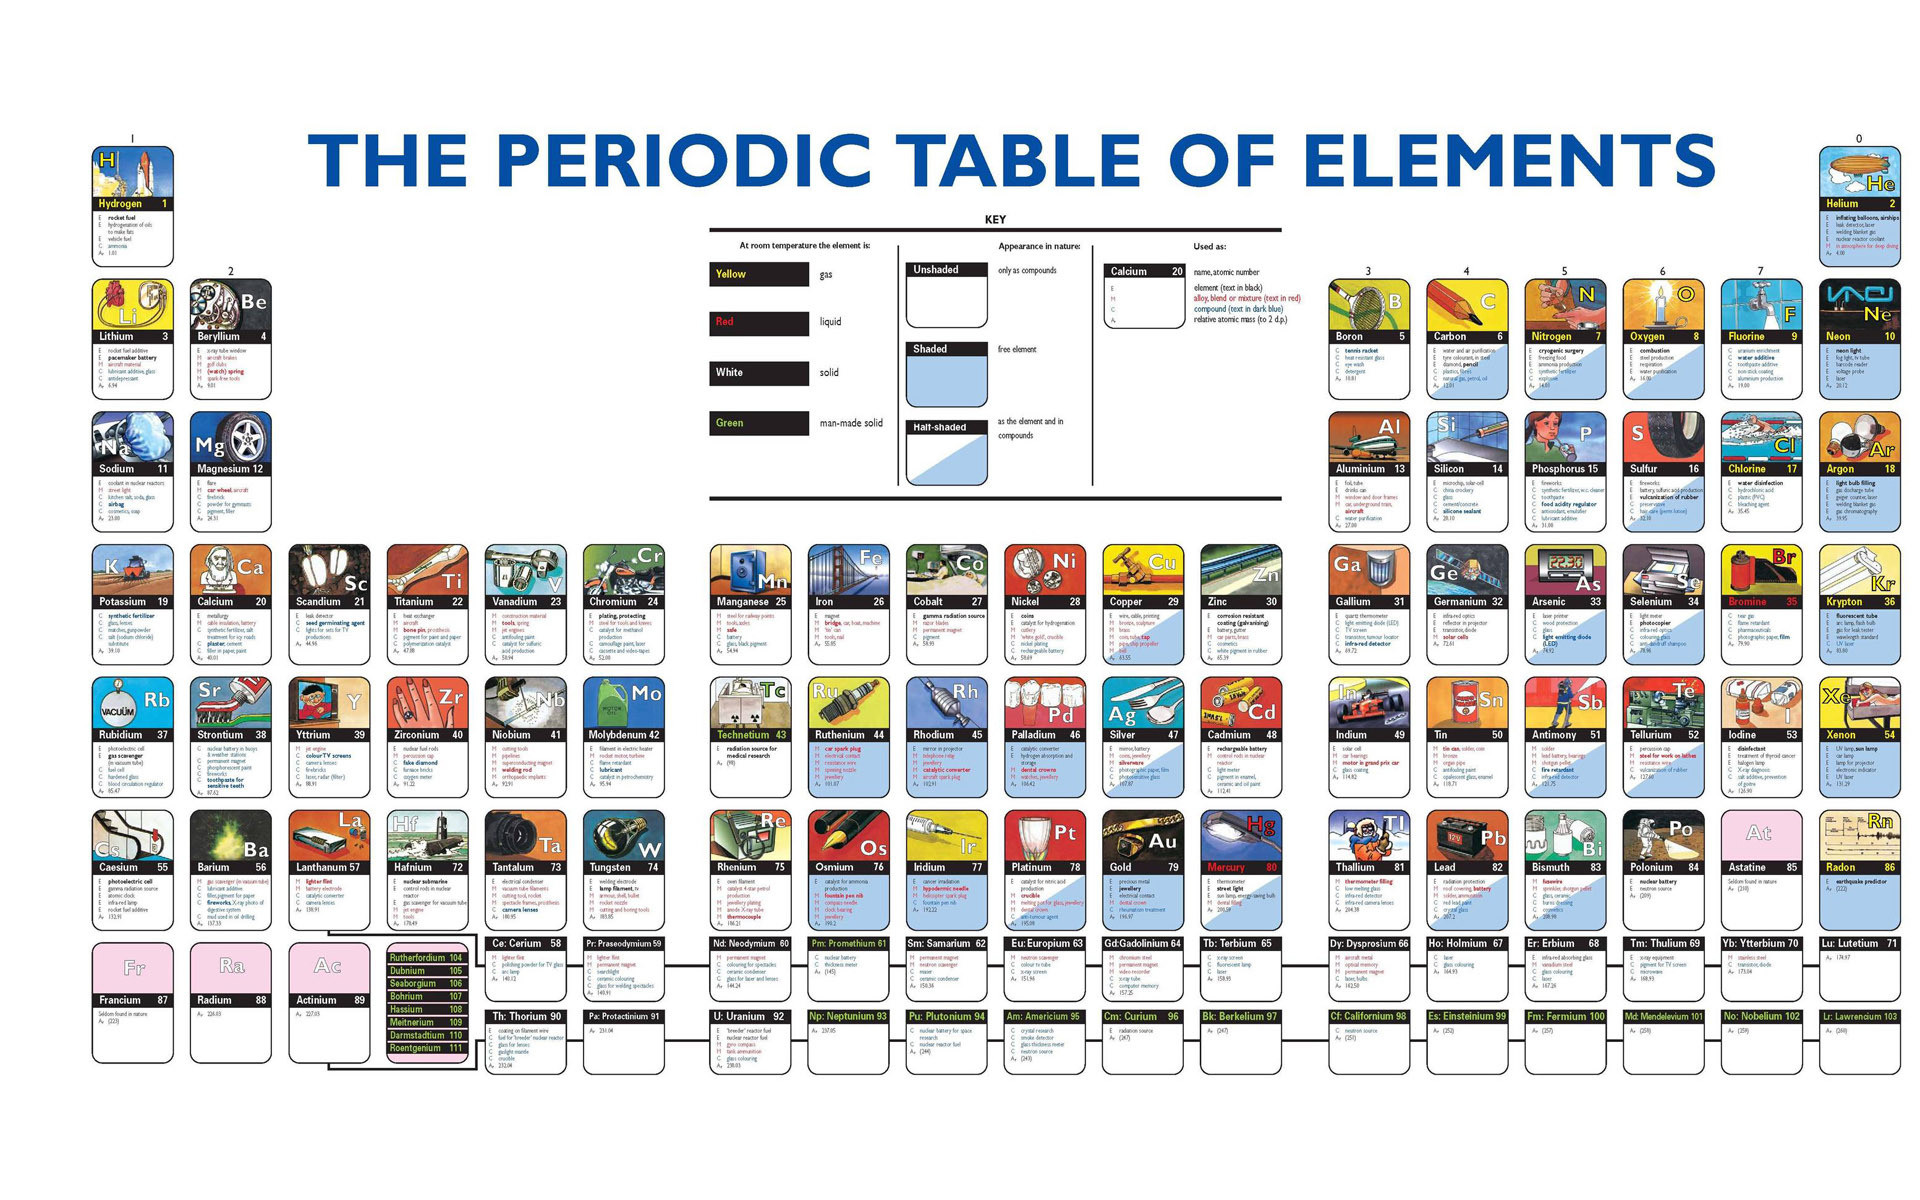 Hd periodic table wallpaper 70 images 2560x1920 download wallpaper back science periodic table chemistry 2363x1635 wallpaper art hd wallpaper urtaz Choice Image